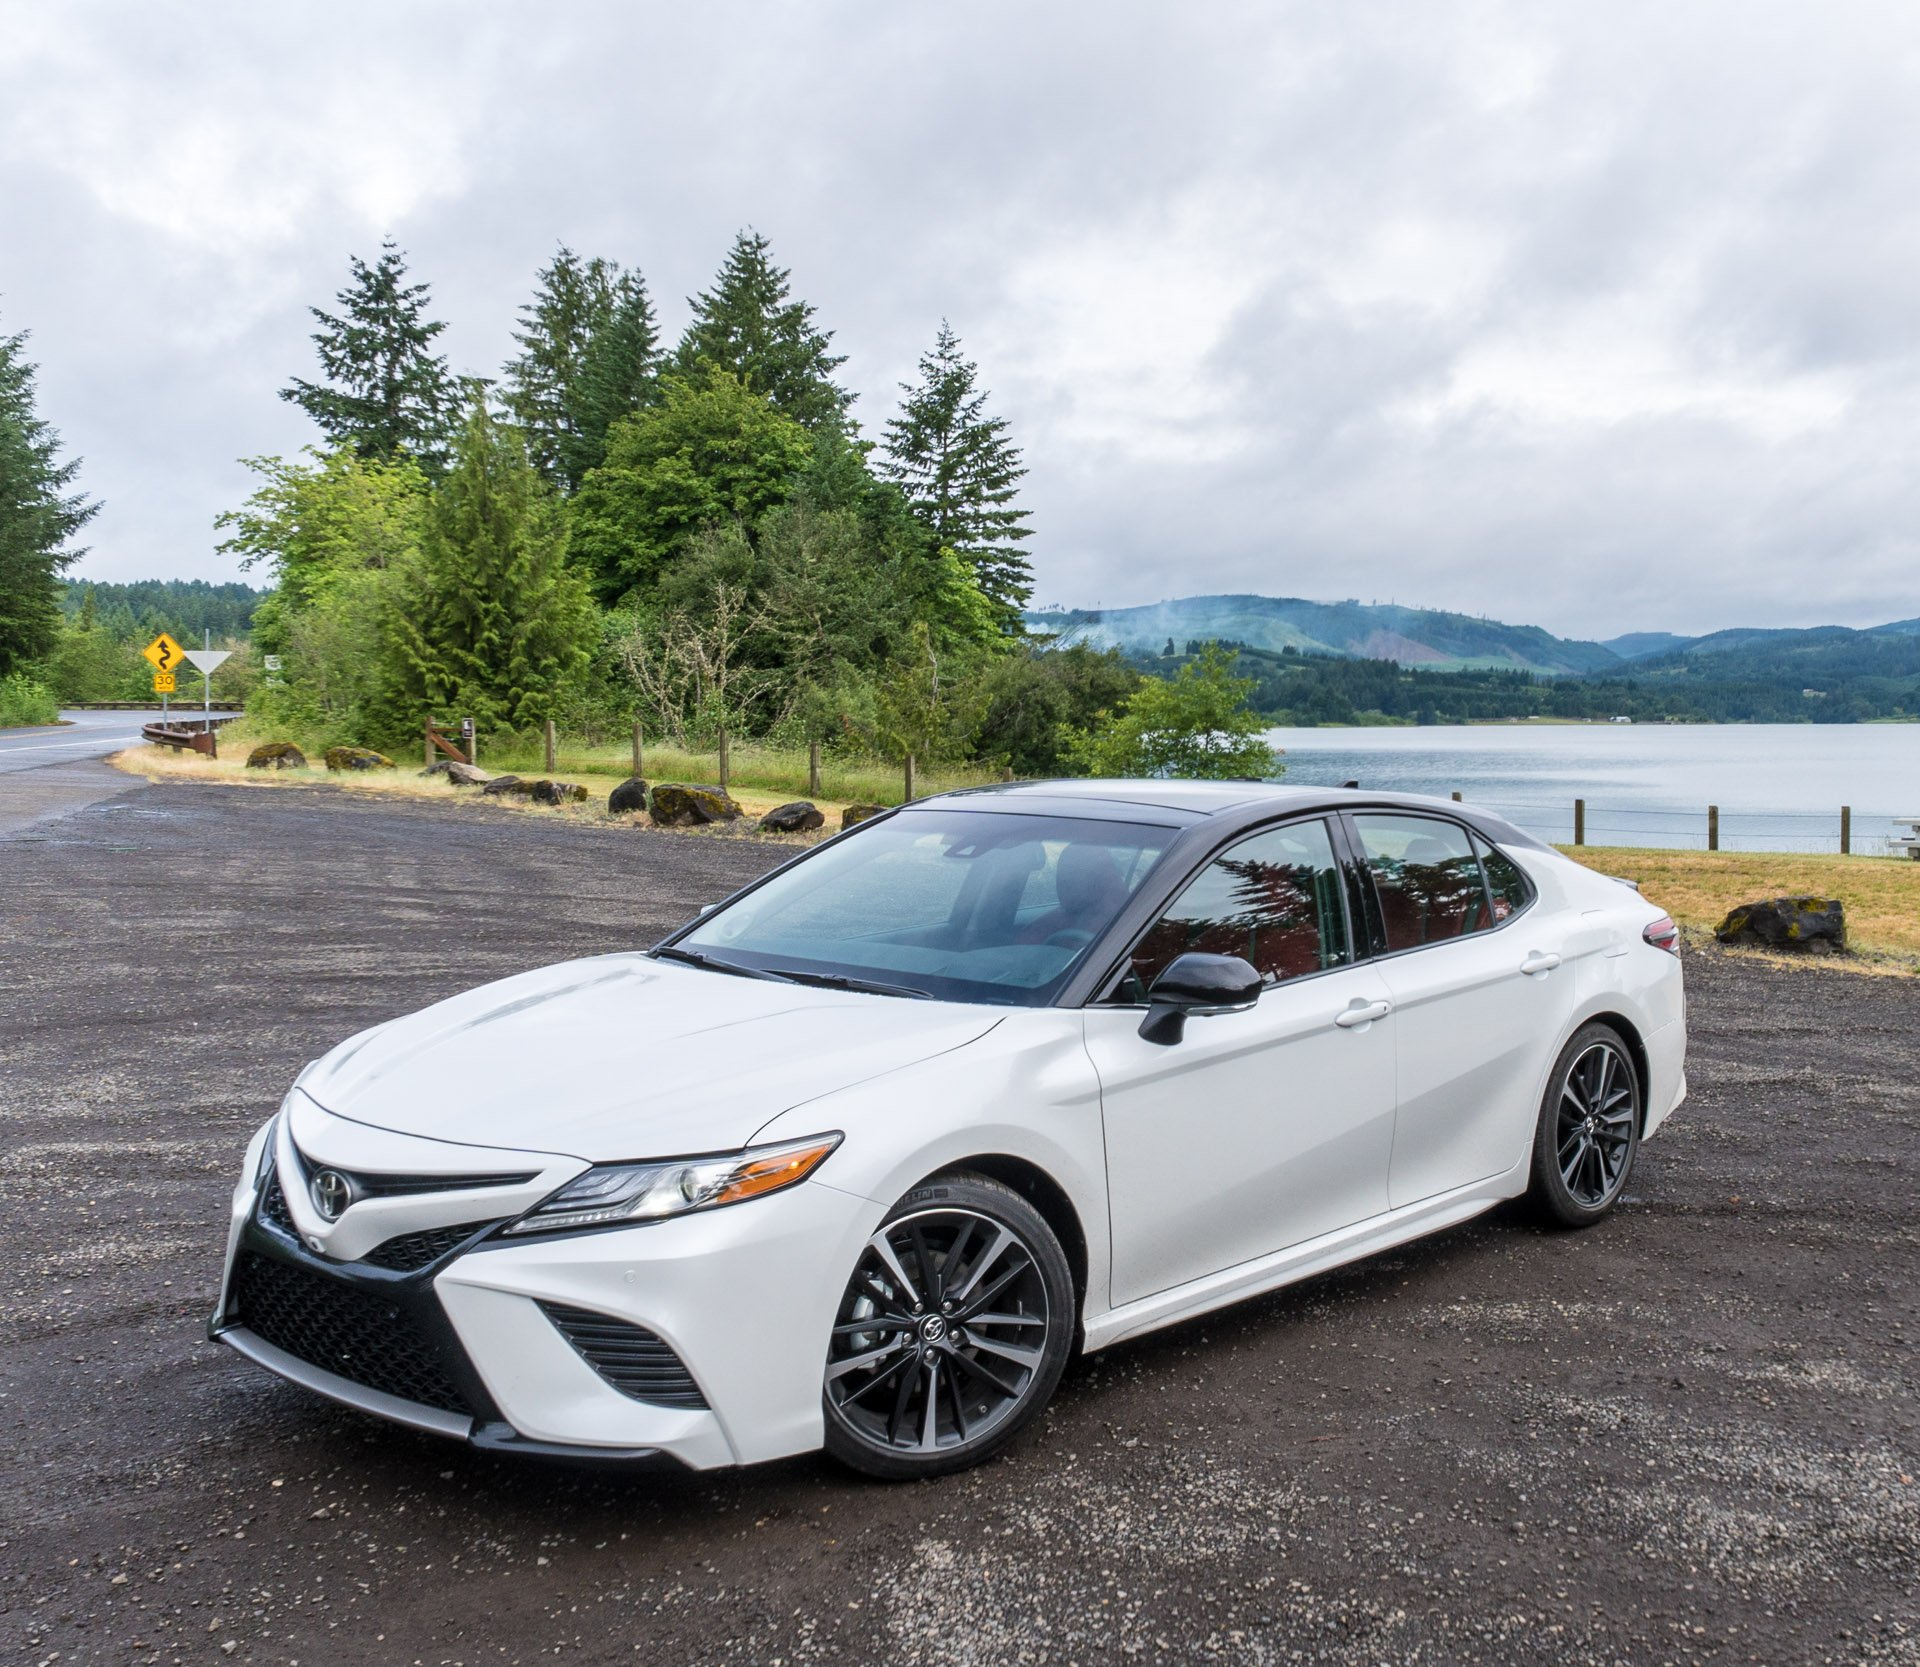 2018 toyota camry first drive review say bye bye bland 95 octane. Black Bedroom Furniture Sets. Home Design Ideas